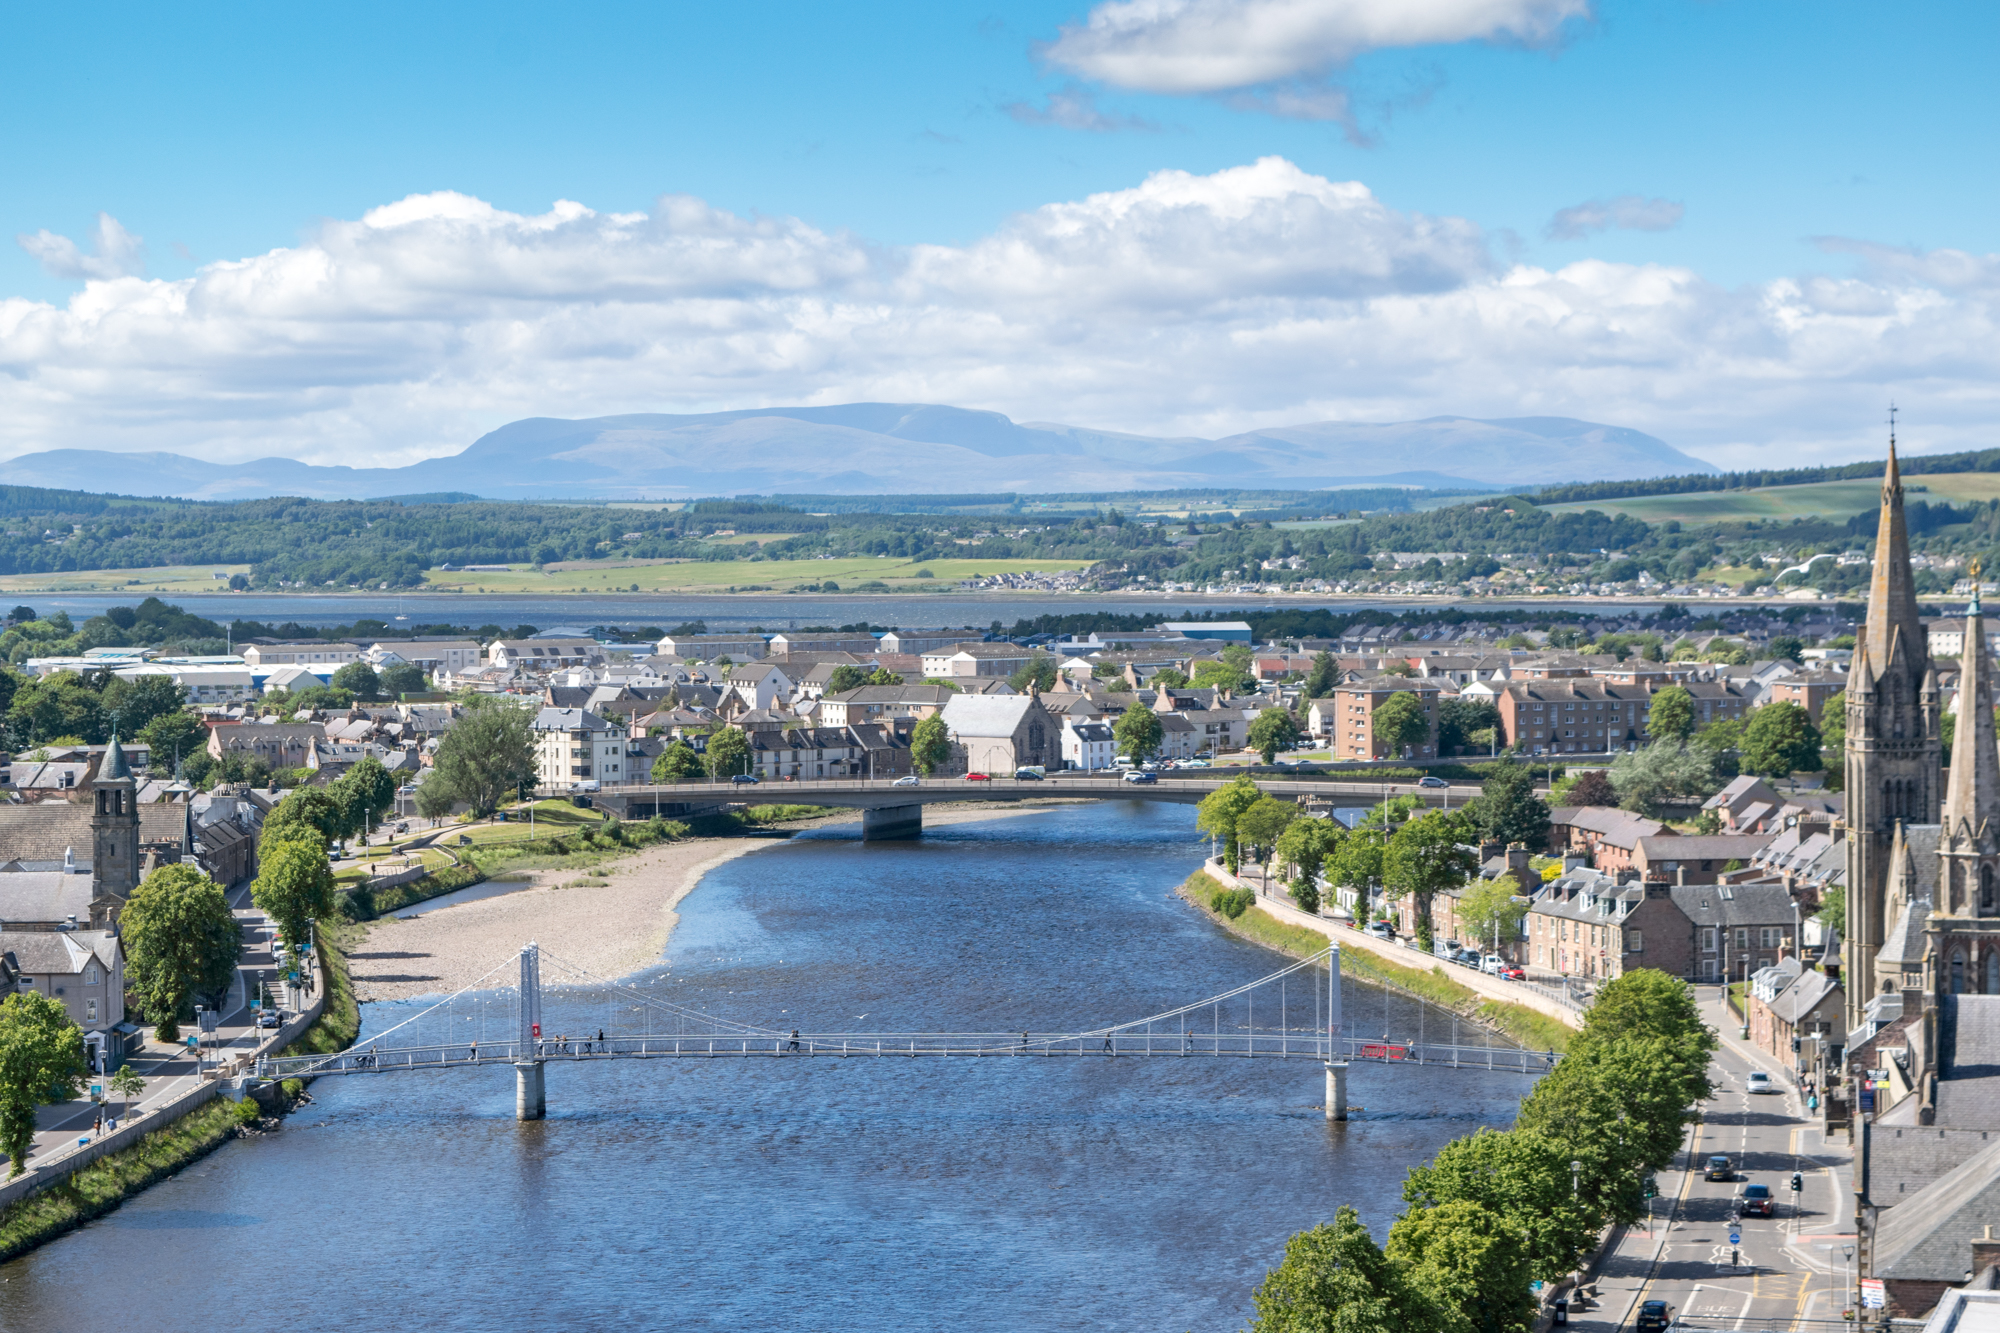 The view of the River Ness and Inverness from Inverness Castle Viewpoint